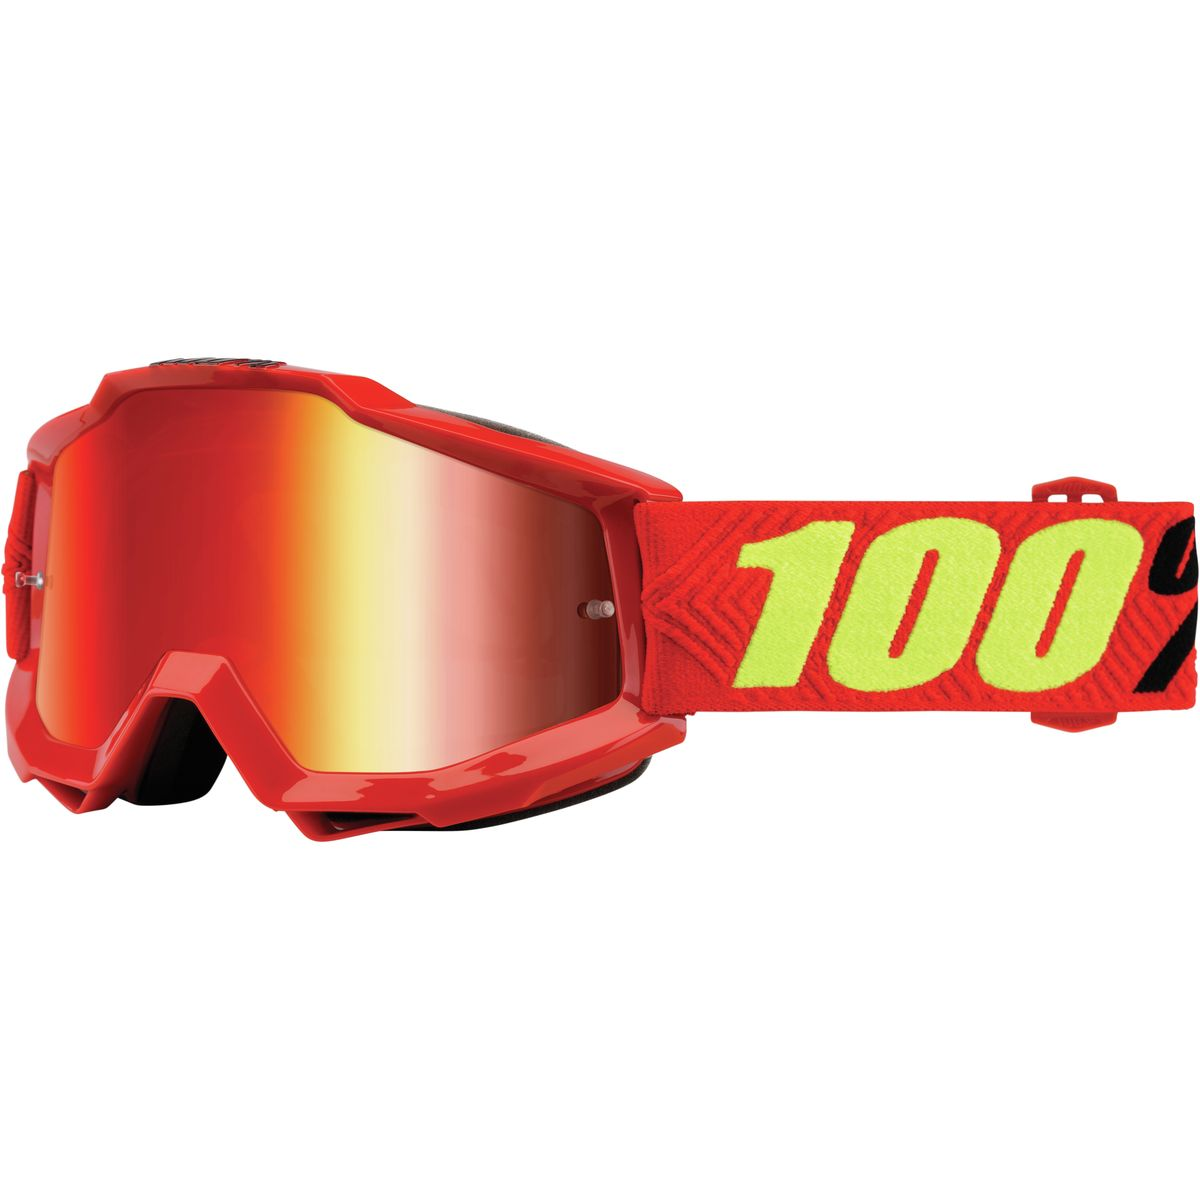 100 ACCURI Goggles Saarinen Mirror Red Lens One Size